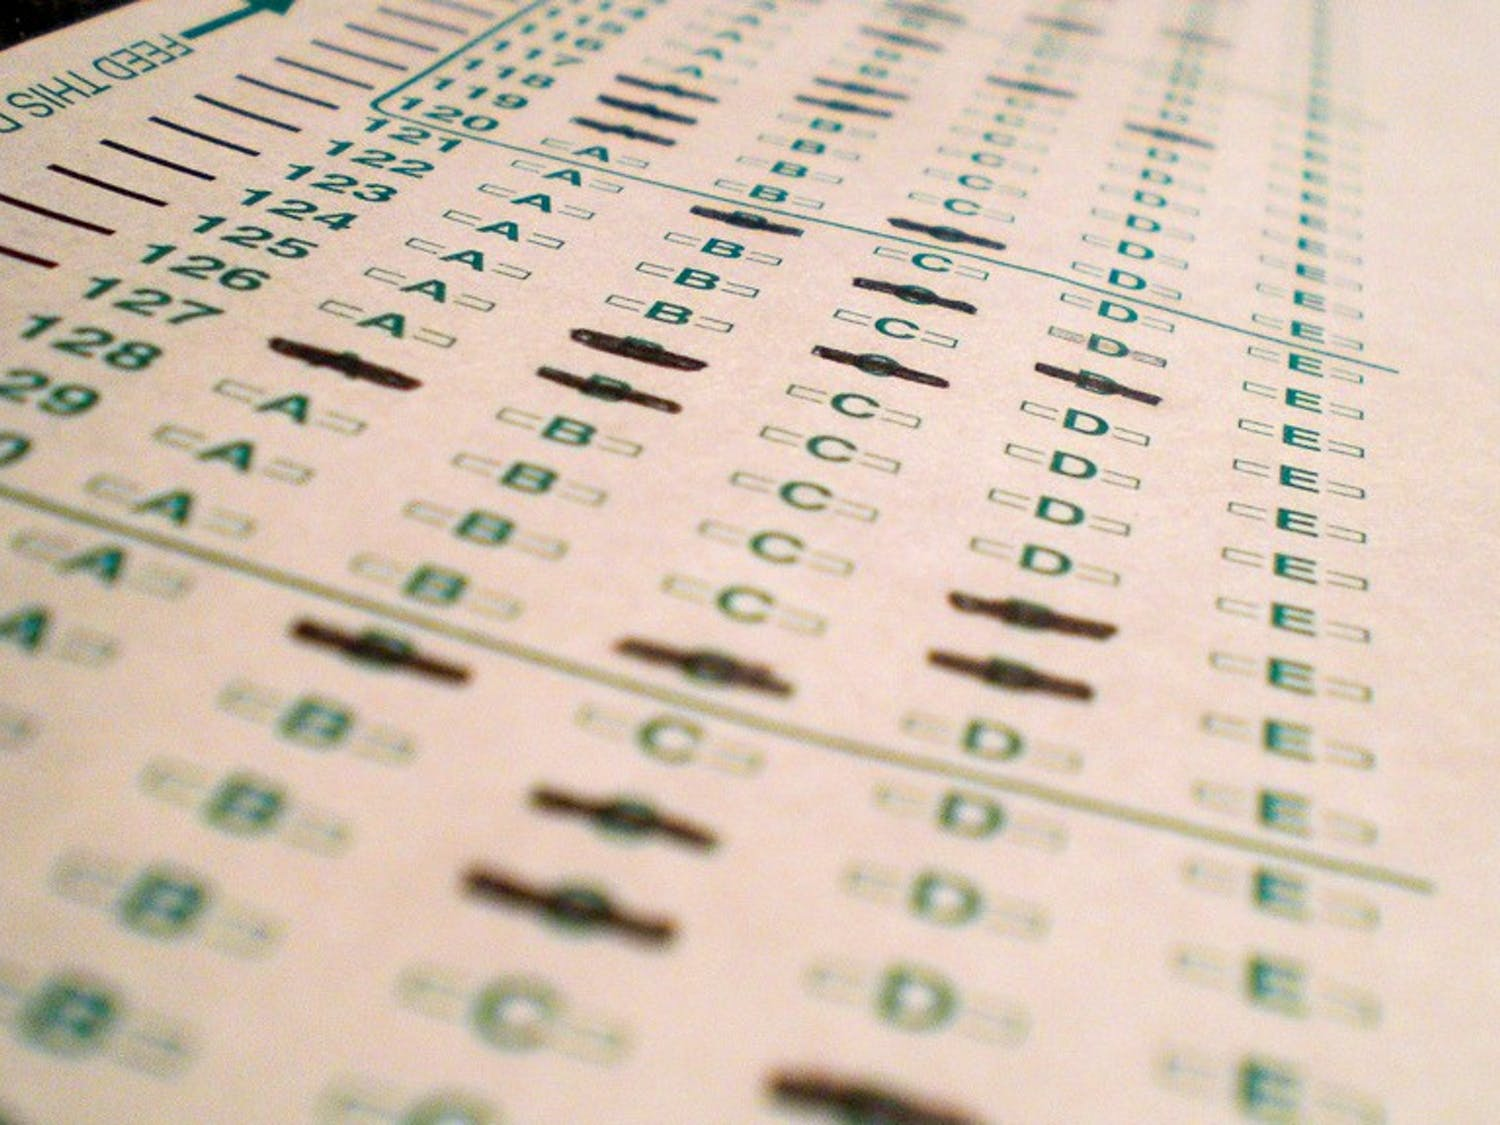 New results from the Department of Public Instruction's Forward Exam show that more than half of students in the state did not score proficient or better in language arts, math and science.